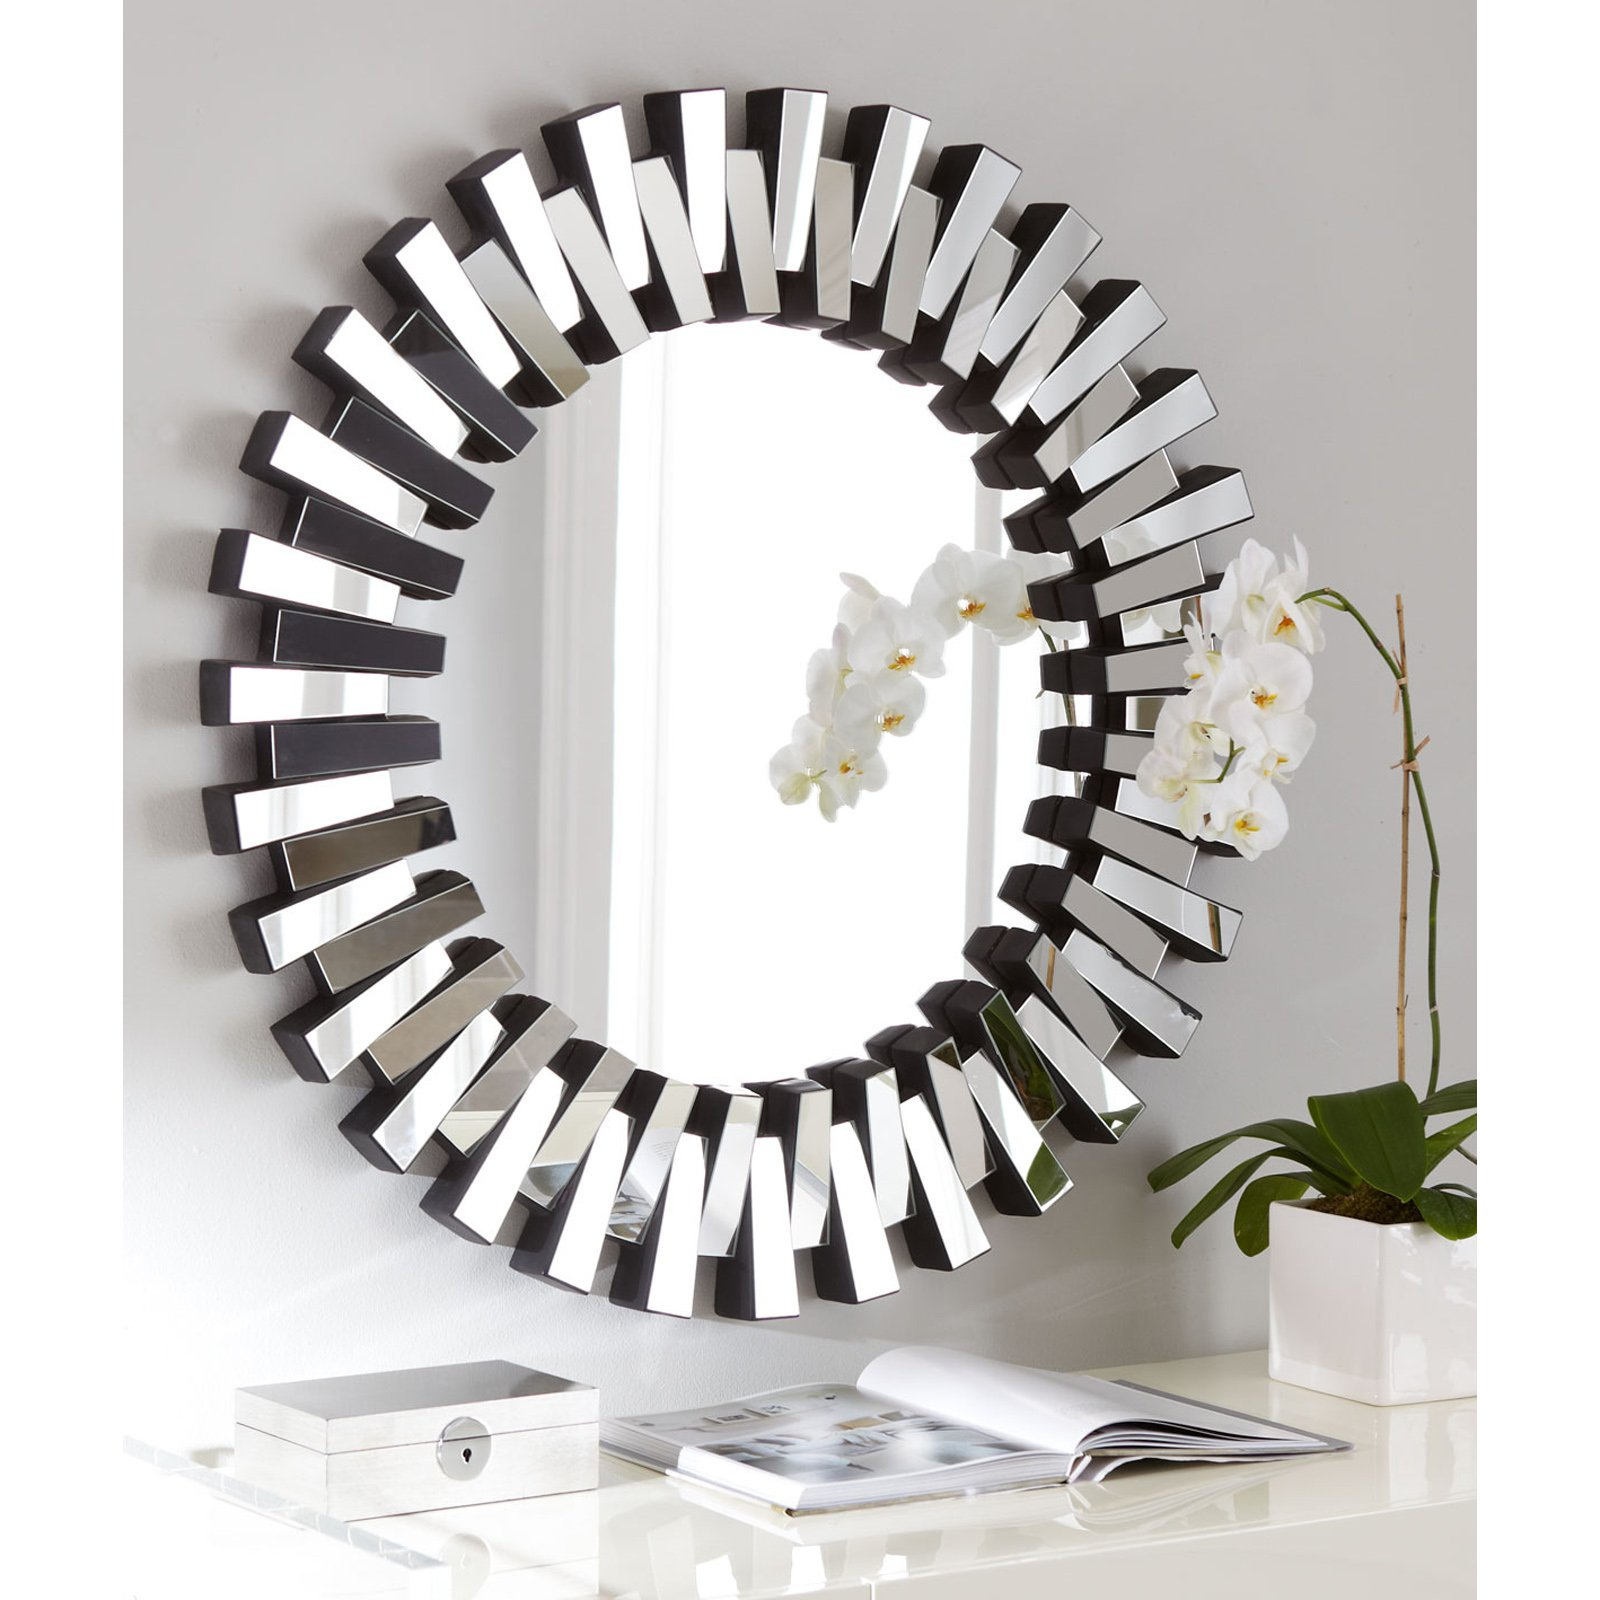 Widely Used Circle Wall Mirrors Inside Afina Modern Luxe Round Wall Mirror – 36 In (View 3 of 20)